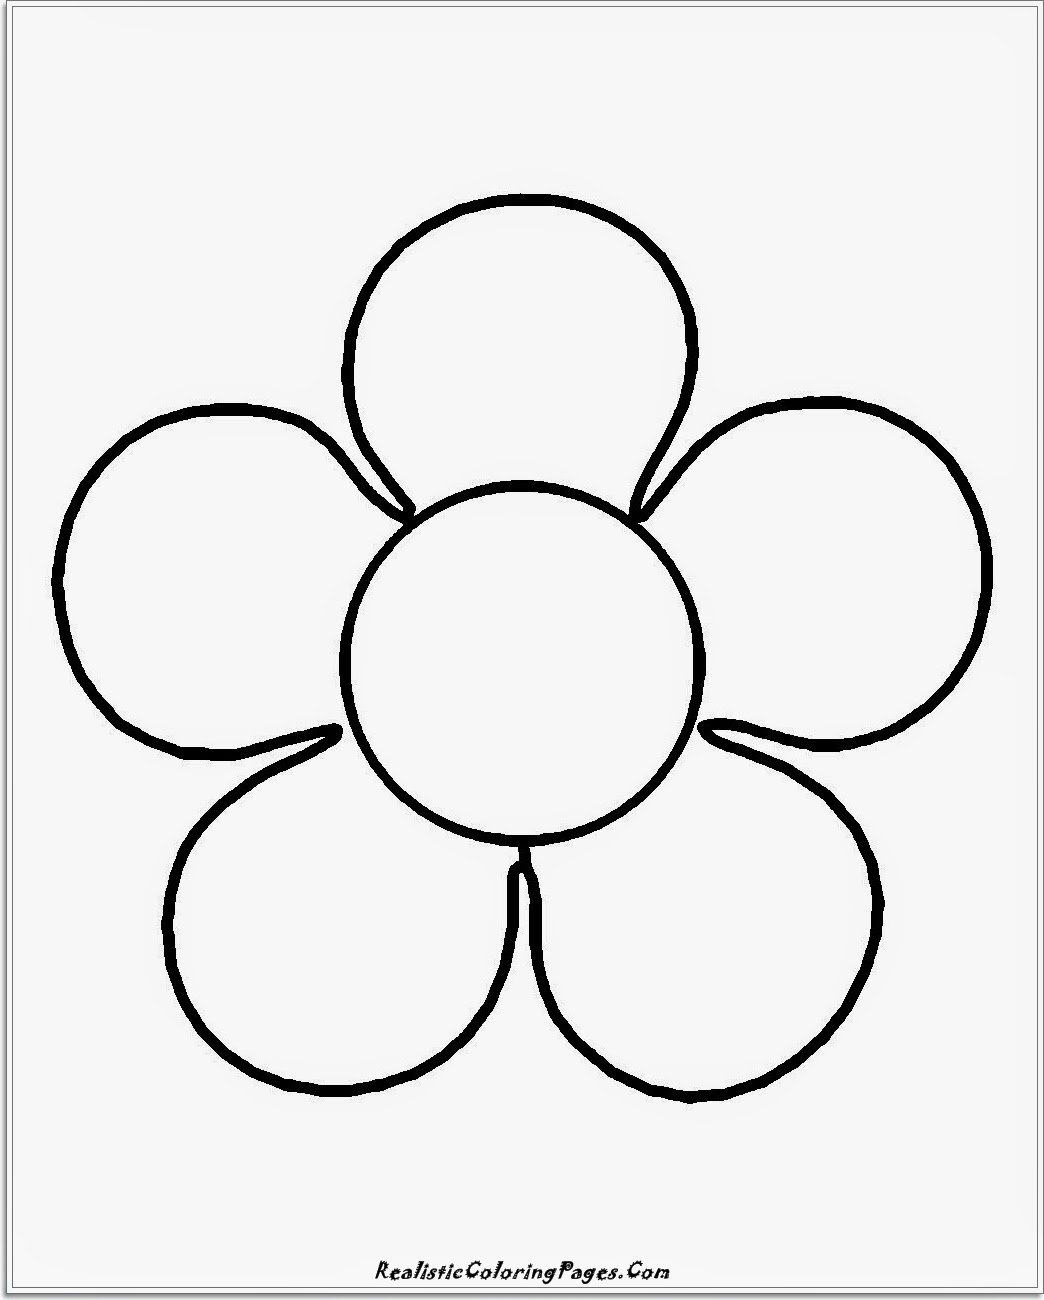 14 Simple Nature Coloring Pages